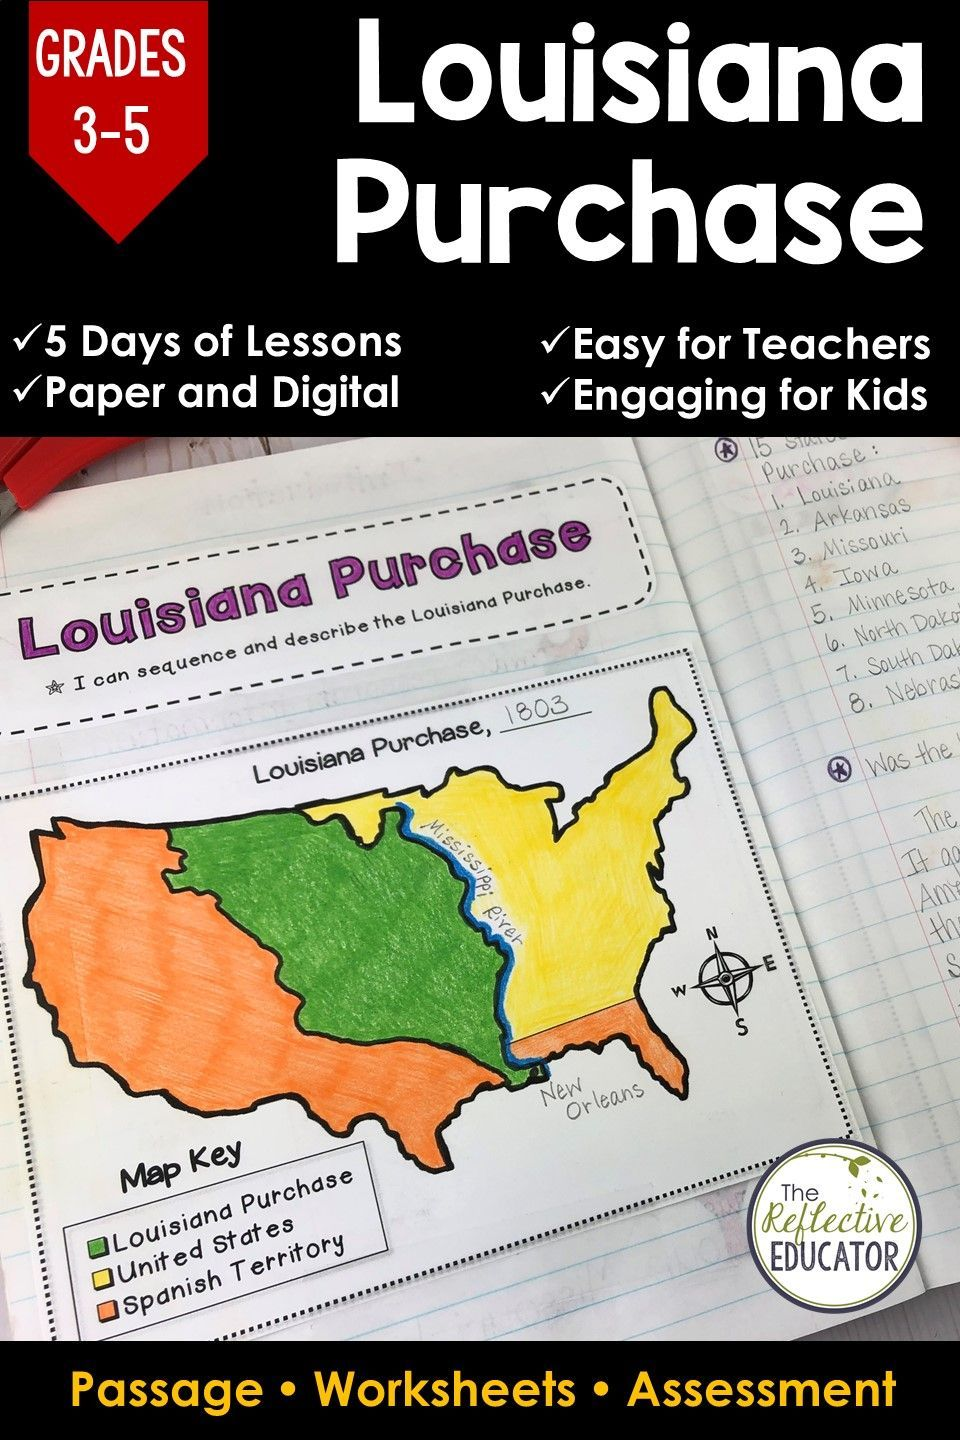 Louisiana Purchase Westward Expansion Google Classroom Distance Learning Social Studies Worksheets Engaging Lesson Plans Reading Comprehension Worksheets